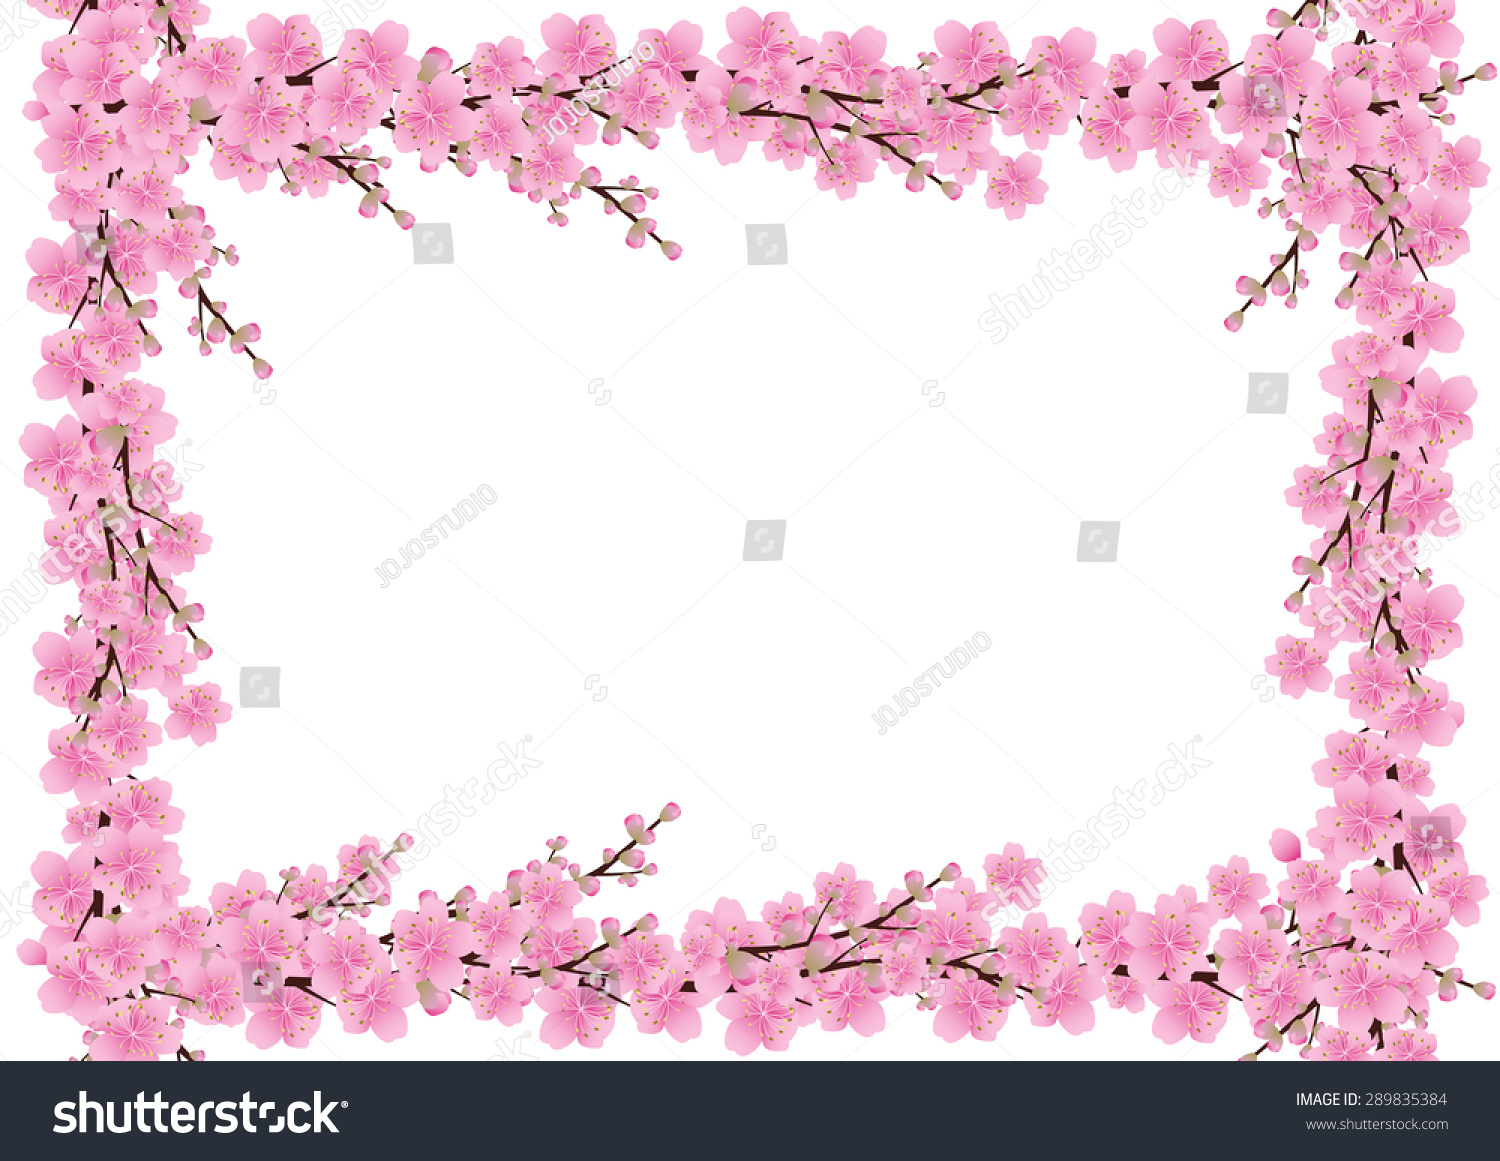 Pink Flowers Spring Background Sakura Cherry Blossom White With Copy Space Isolated Corner Border